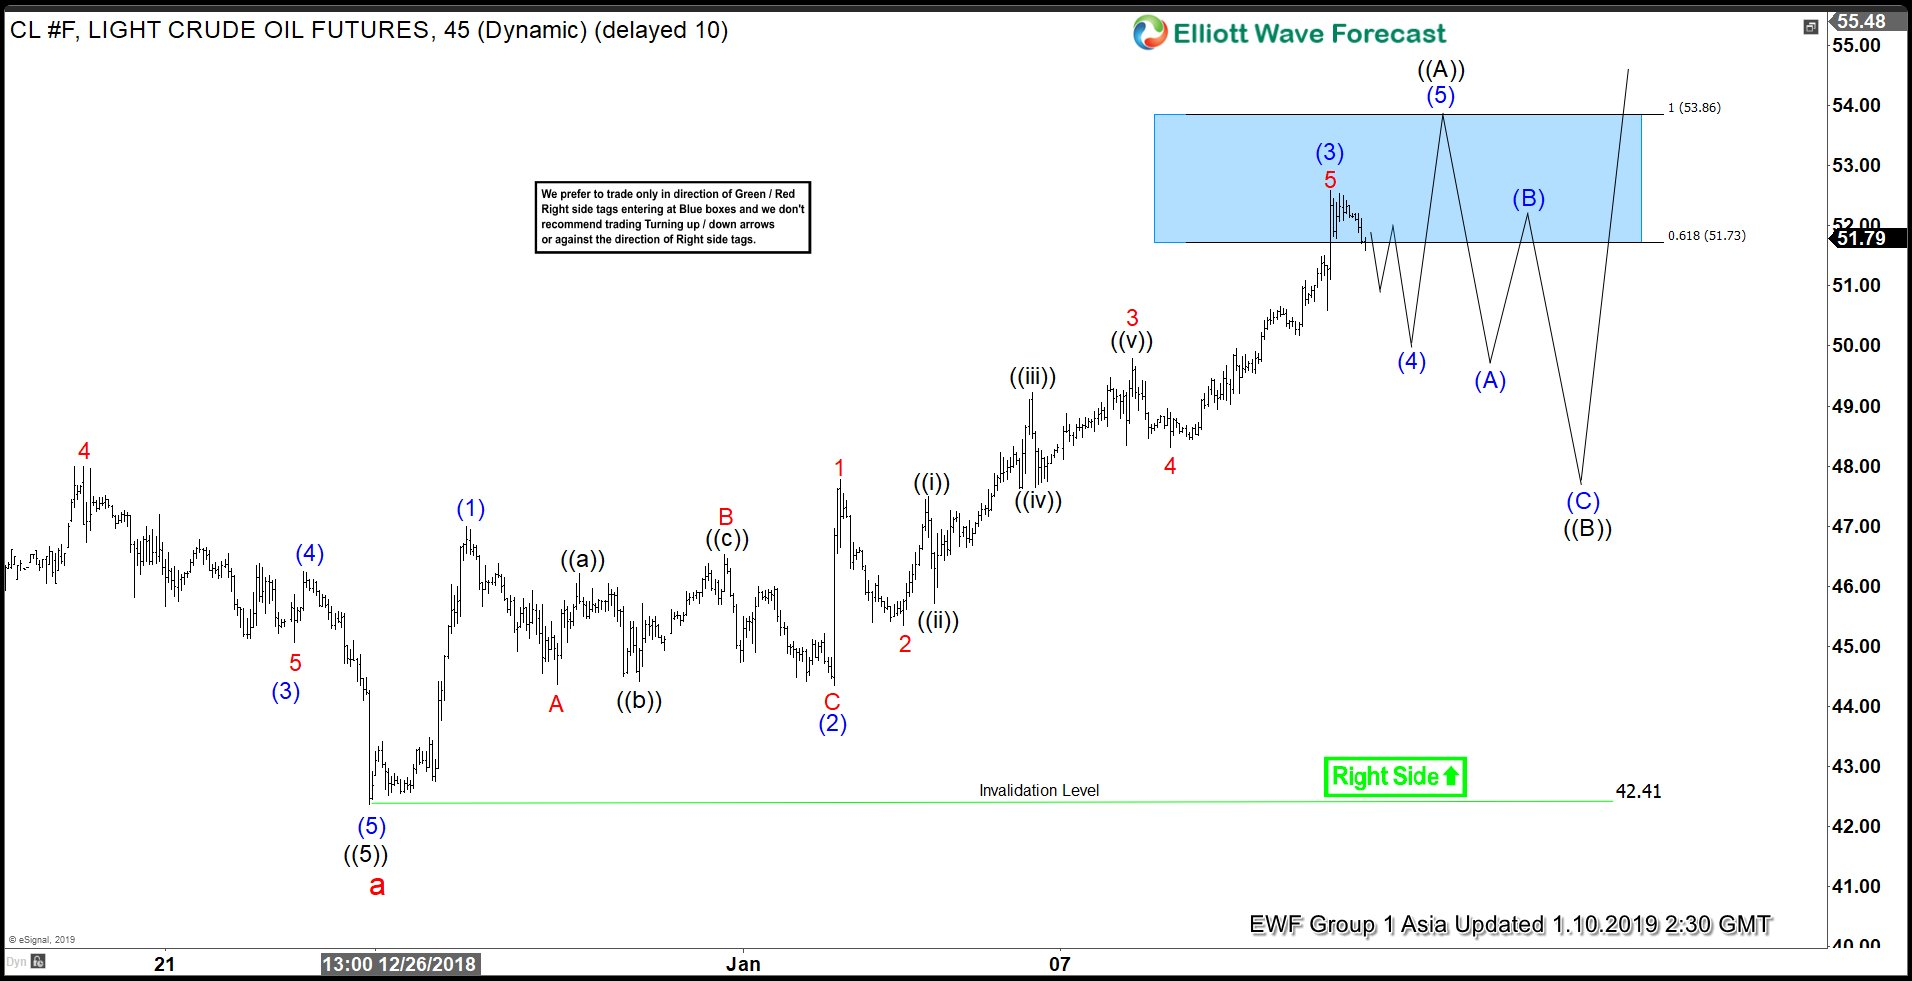 Short Term Elliott Wave outlook in Oil